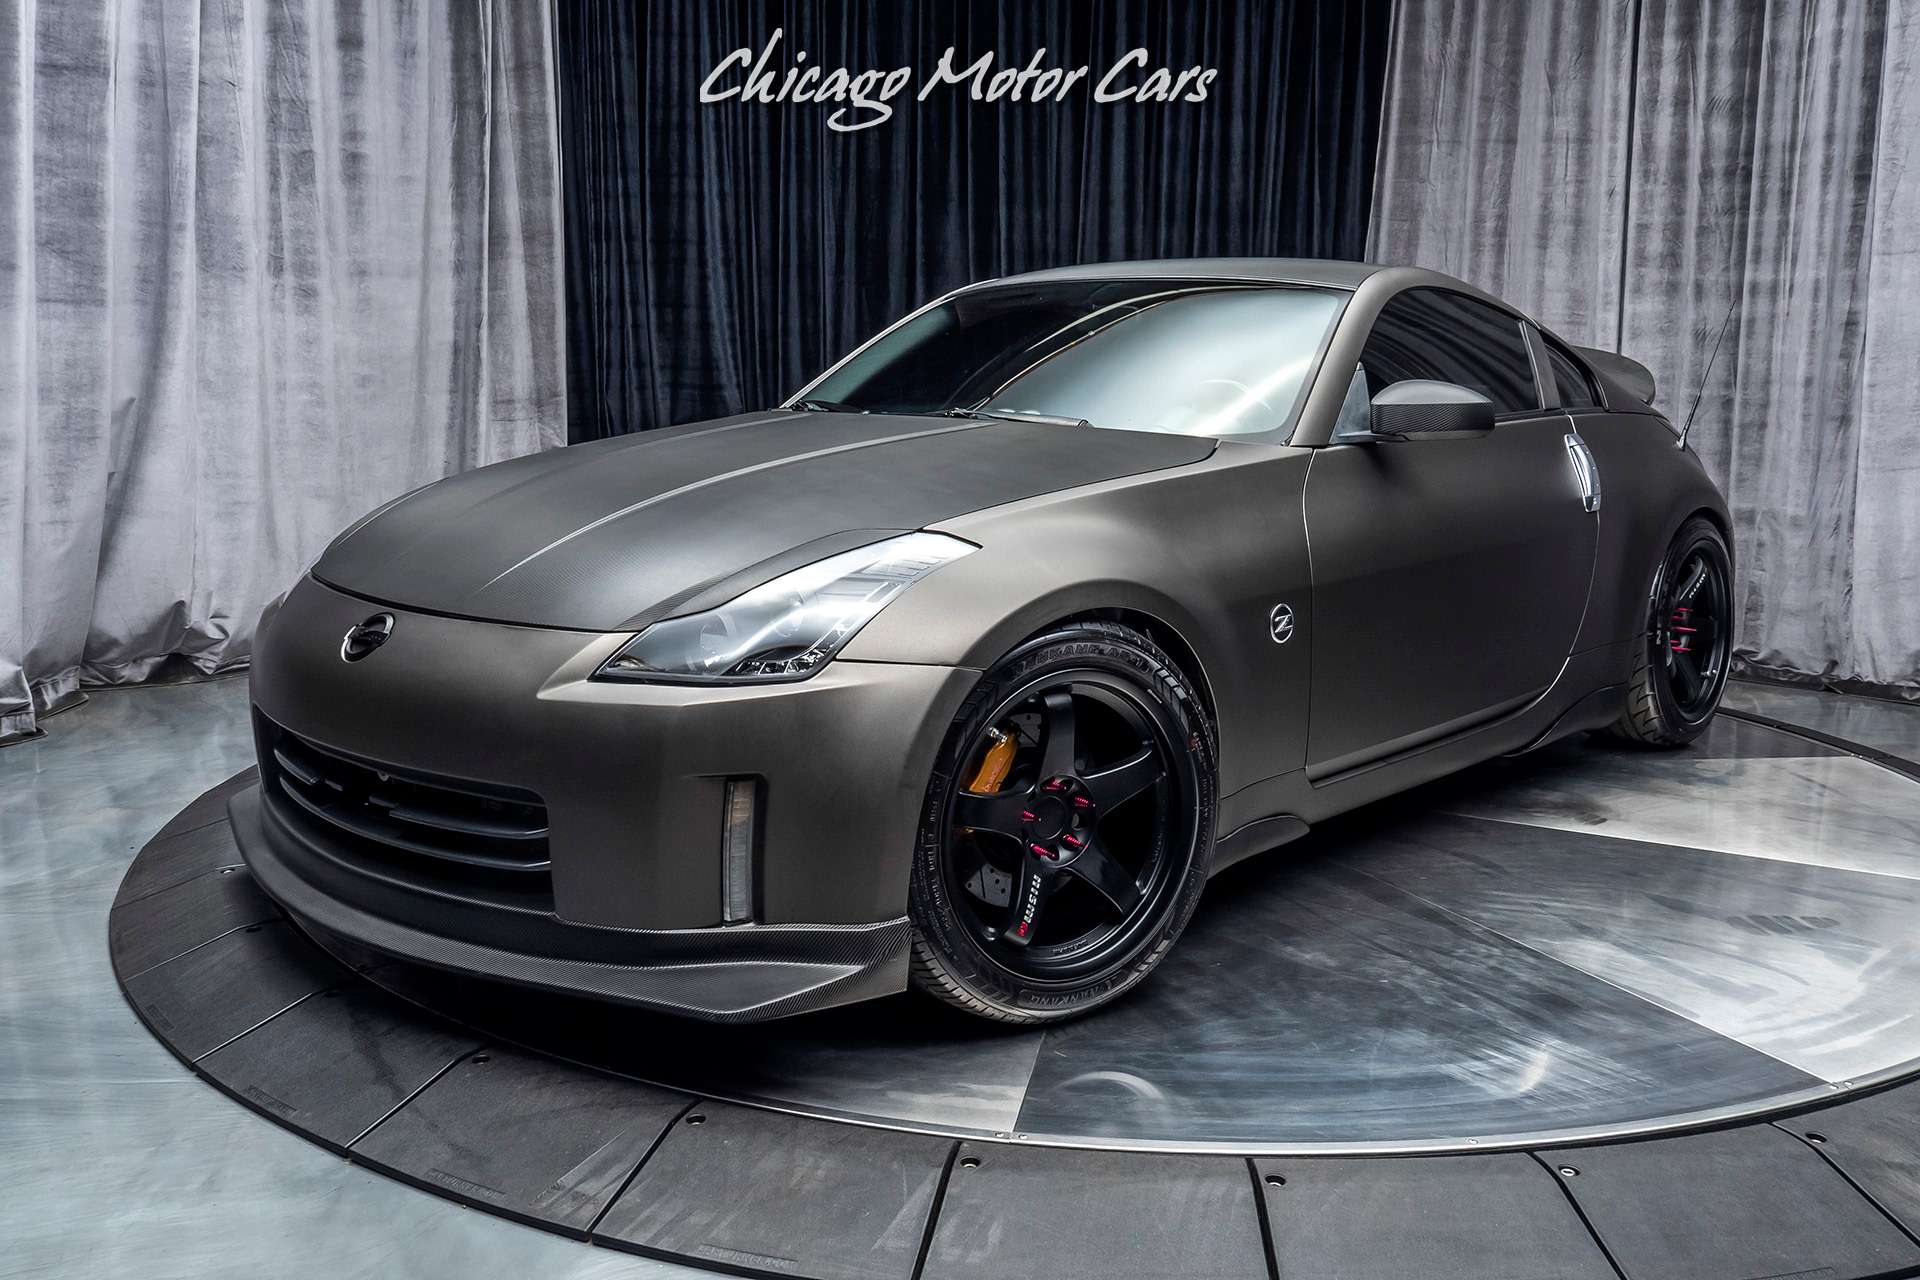 350z nissan 2006 track coupe upgrades loaded cars